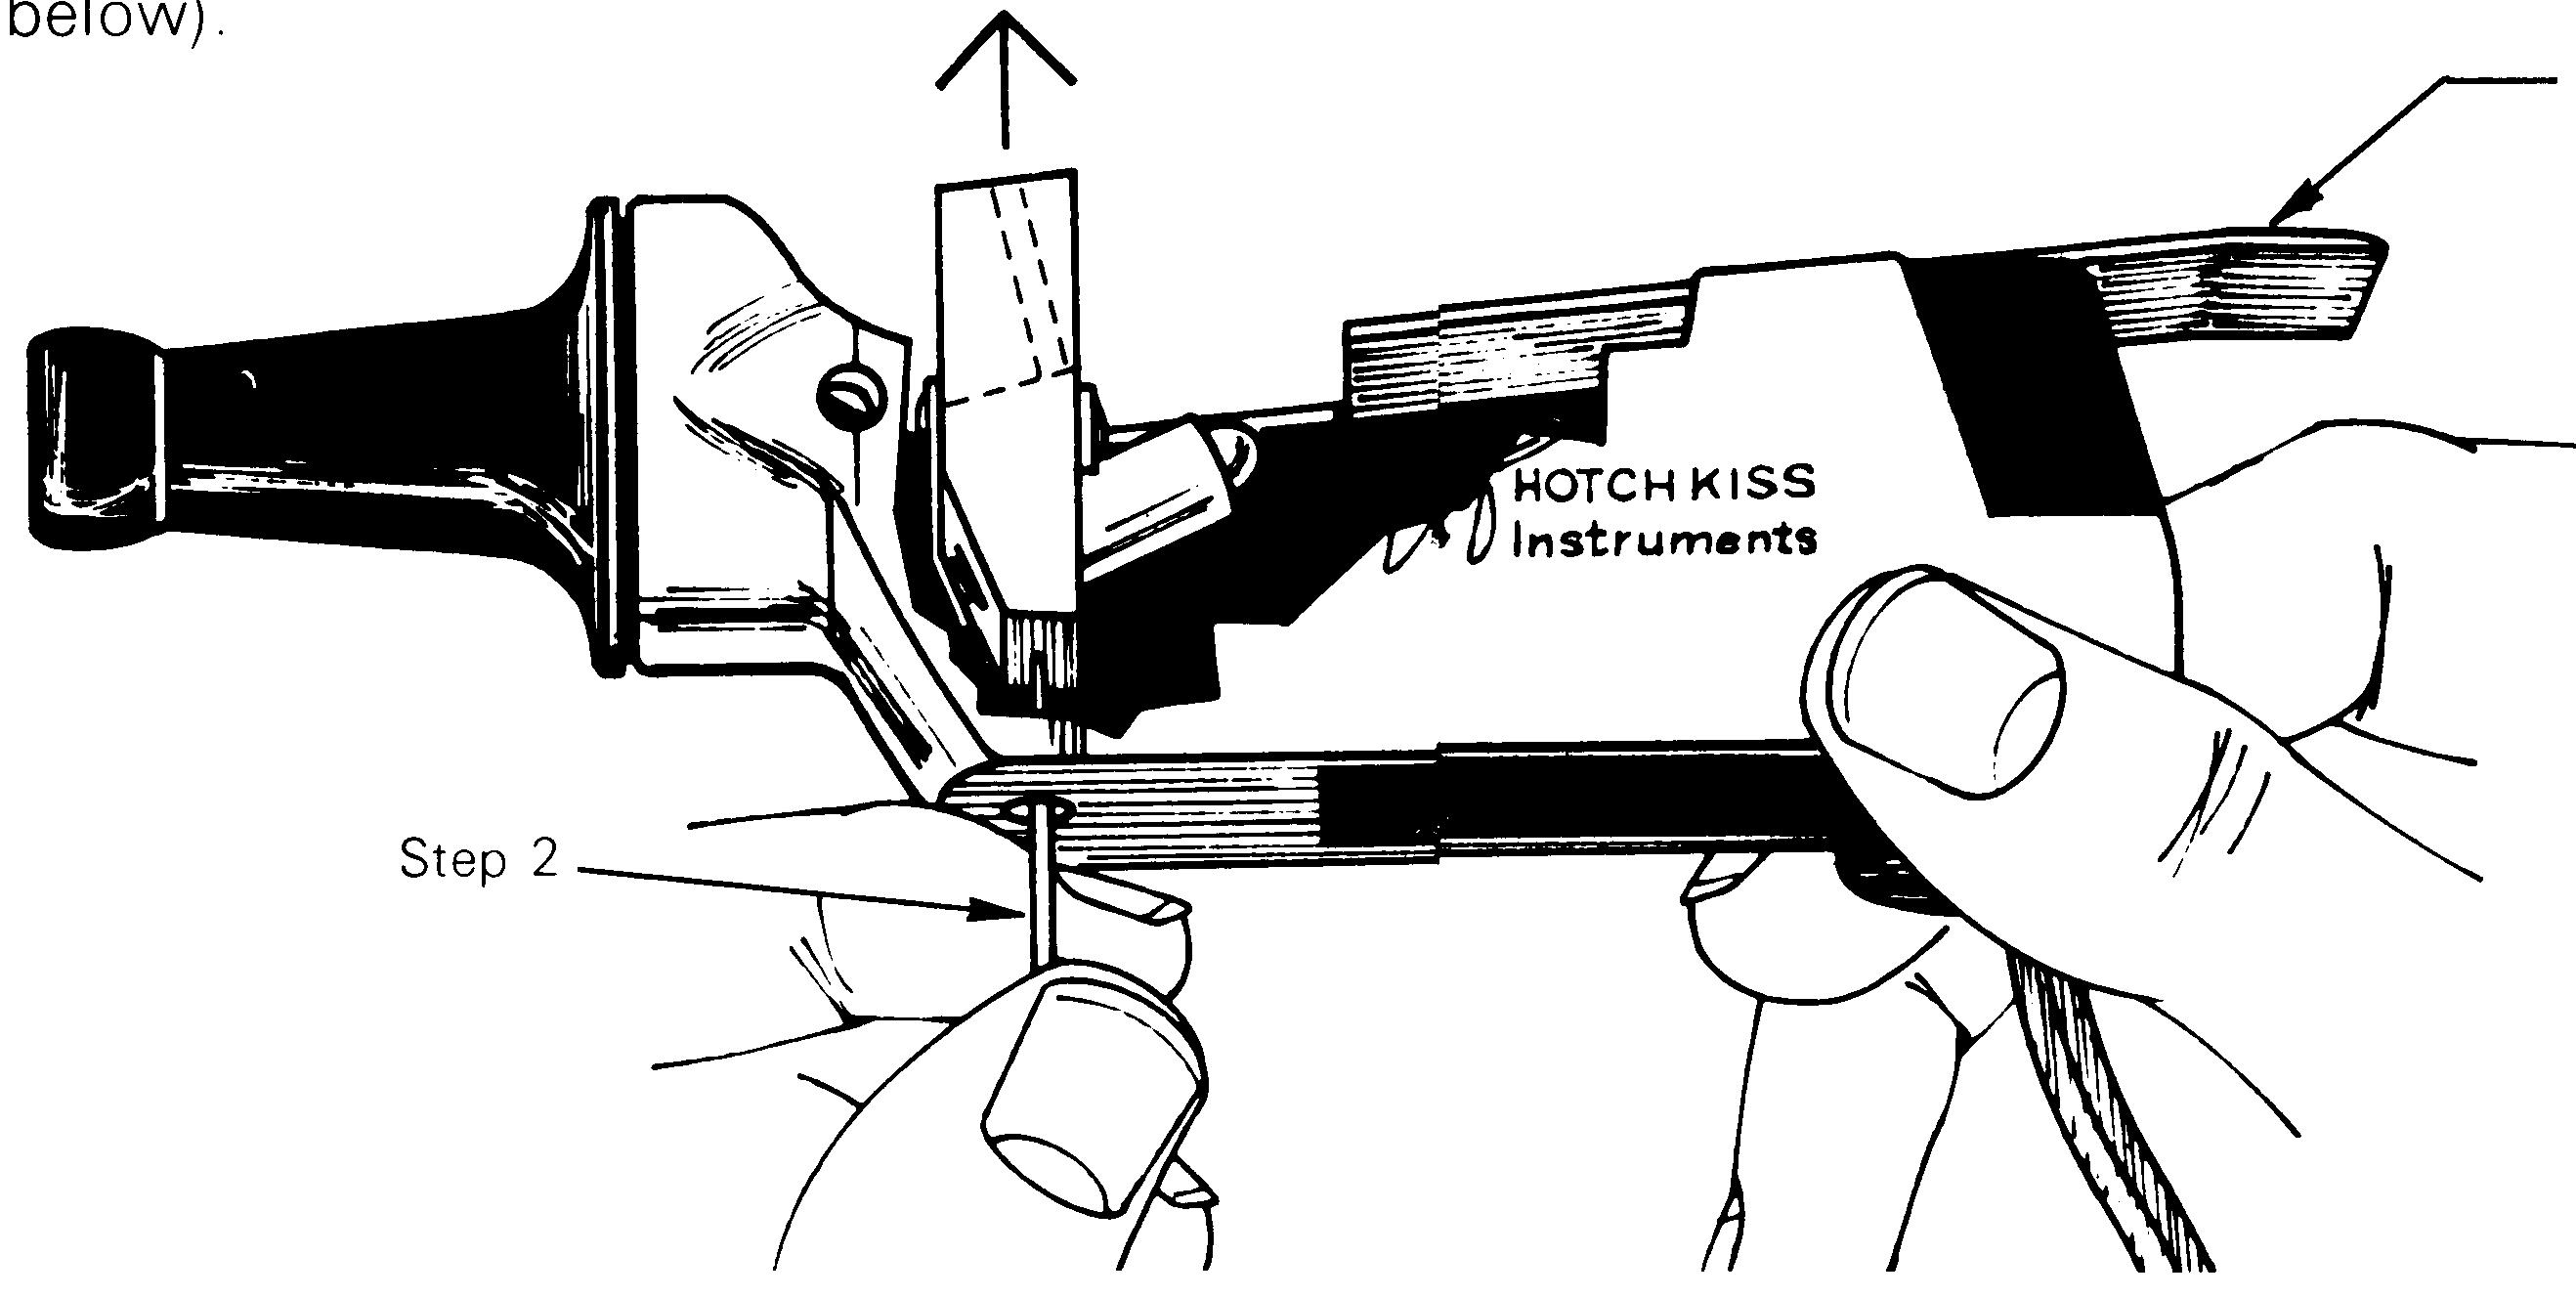 hotchkiss-instructions-figure-3-001.jpg